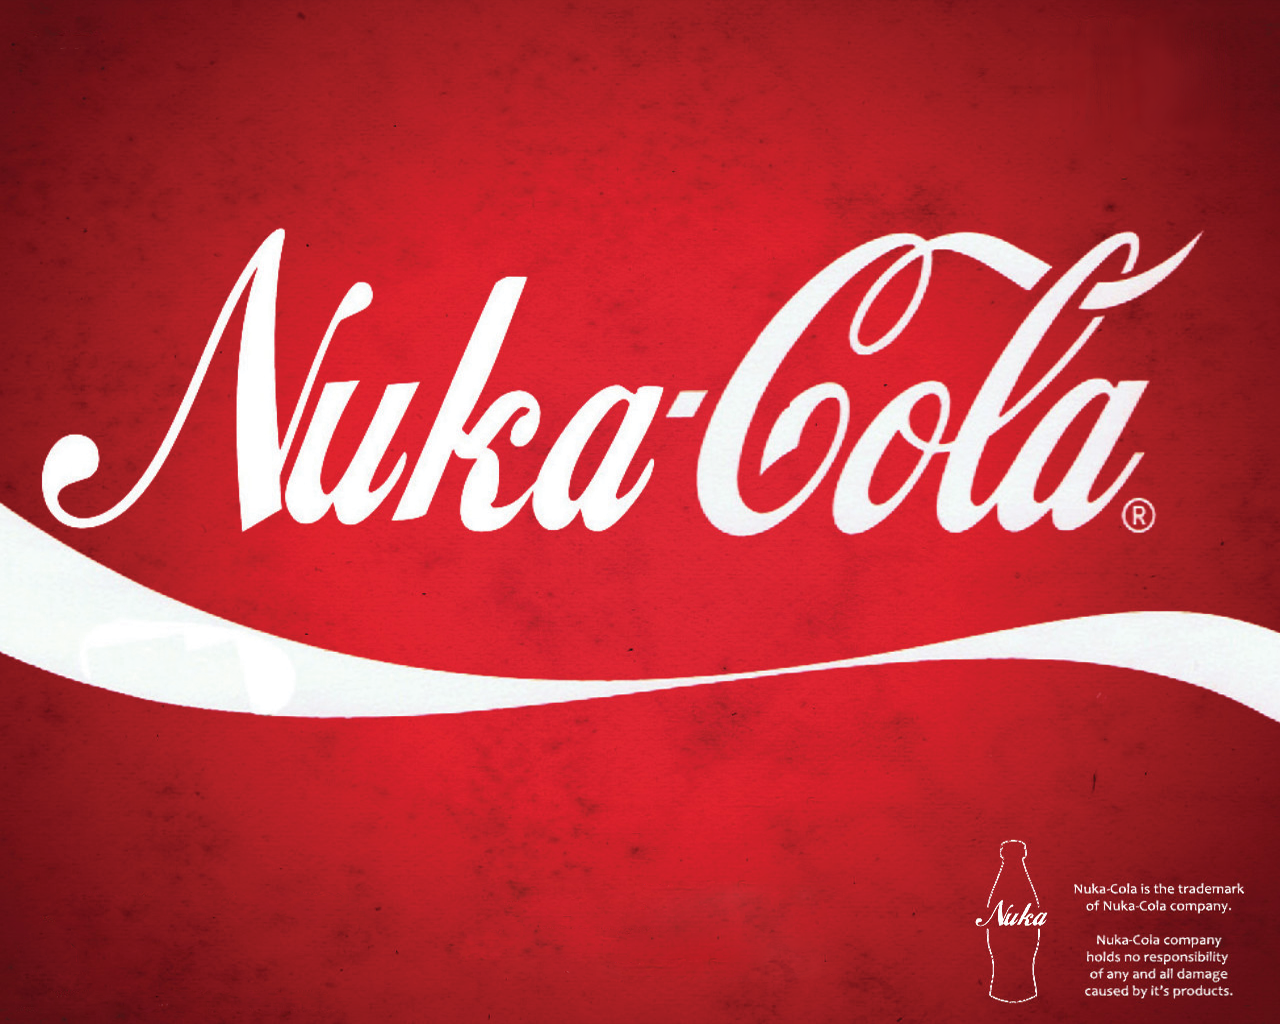 Free Download Fallout Nuka Wallpaper 1280x1024 Fallout Nuka Cola